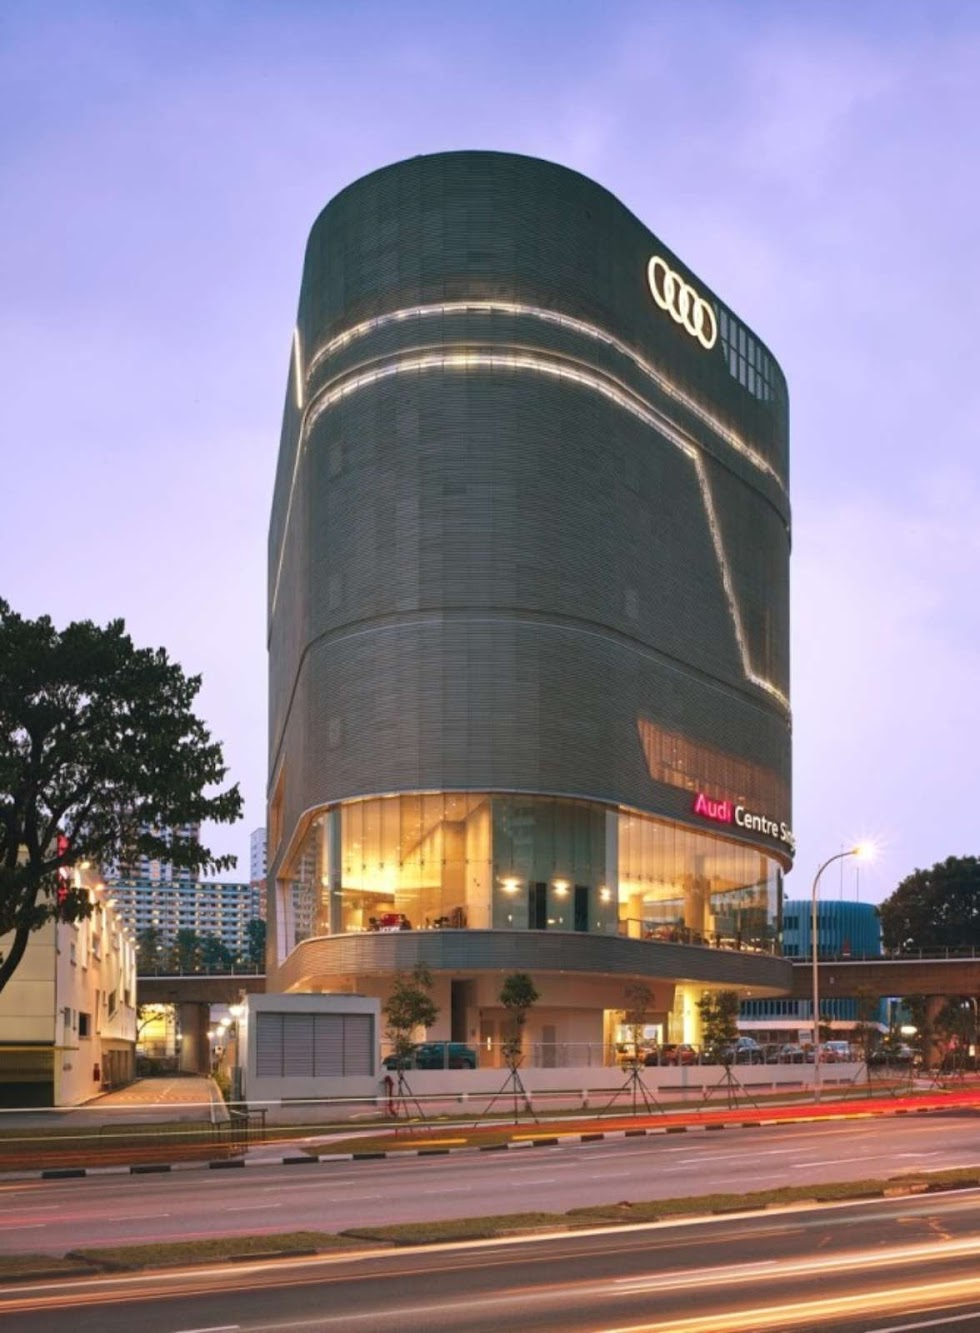 06-Audi-Centre-Singapore-by-ONG&ONG